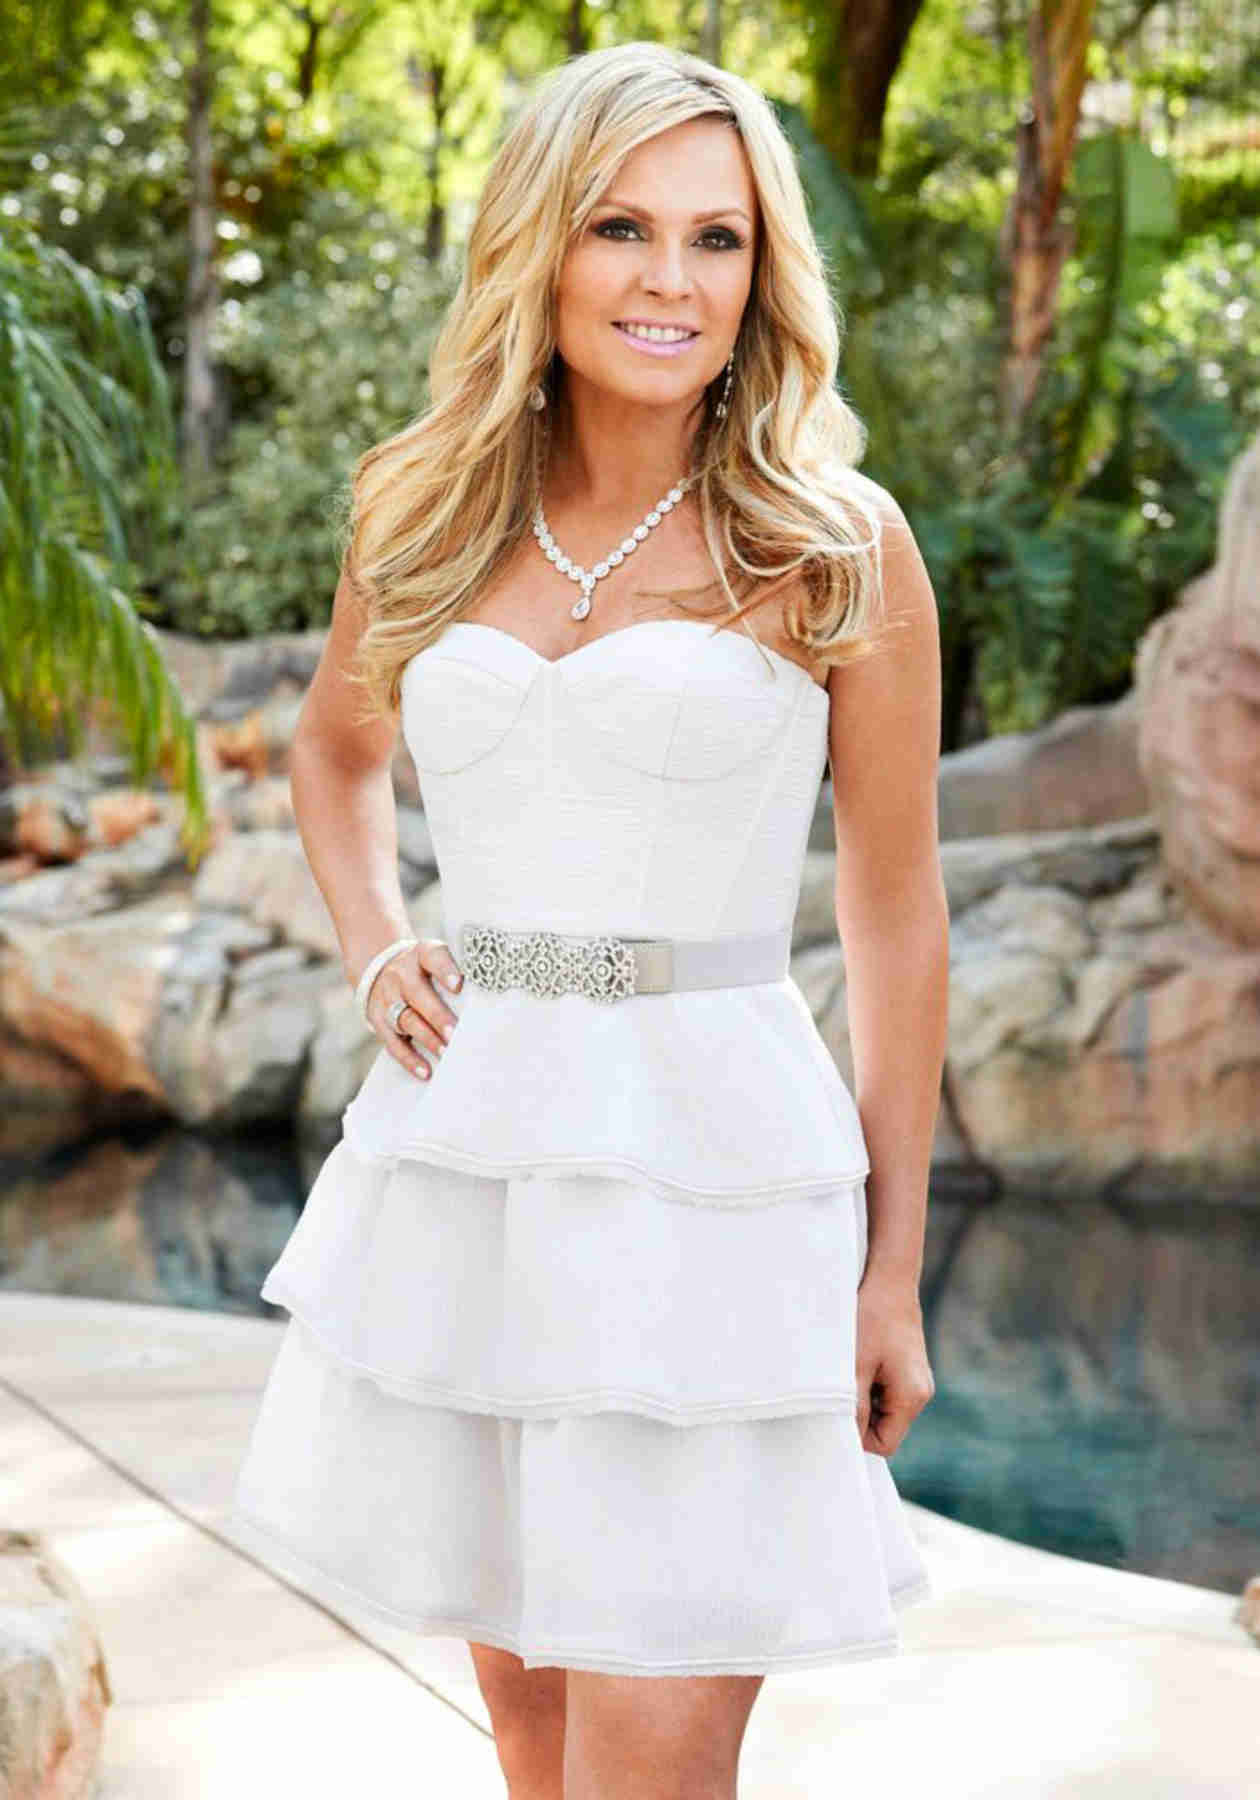 Was Tamra Barney Fired From The Real Housewives of Orange County? (UPDATE)